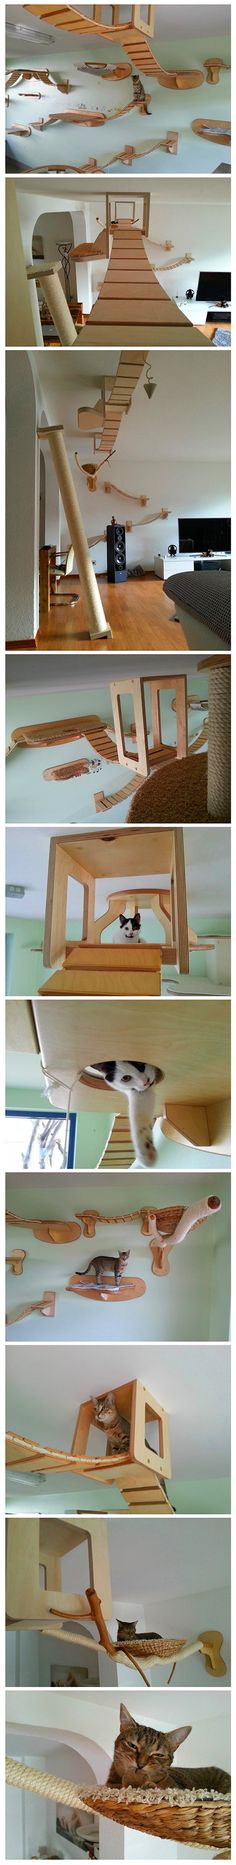 German design company Goldtatze (Gold Paw) specializes in transforming ordinary rooms into overhead playgrounds for cats. By adding wooden bridges, hammocks, scratching posts, and even little dens for cats to hide out in, each site-specific installation offers playful felines plenty of room for adventurous activity and their much needed catnaps. Heidi Heneks Siercks!!! Looks like something  Ashton could use!